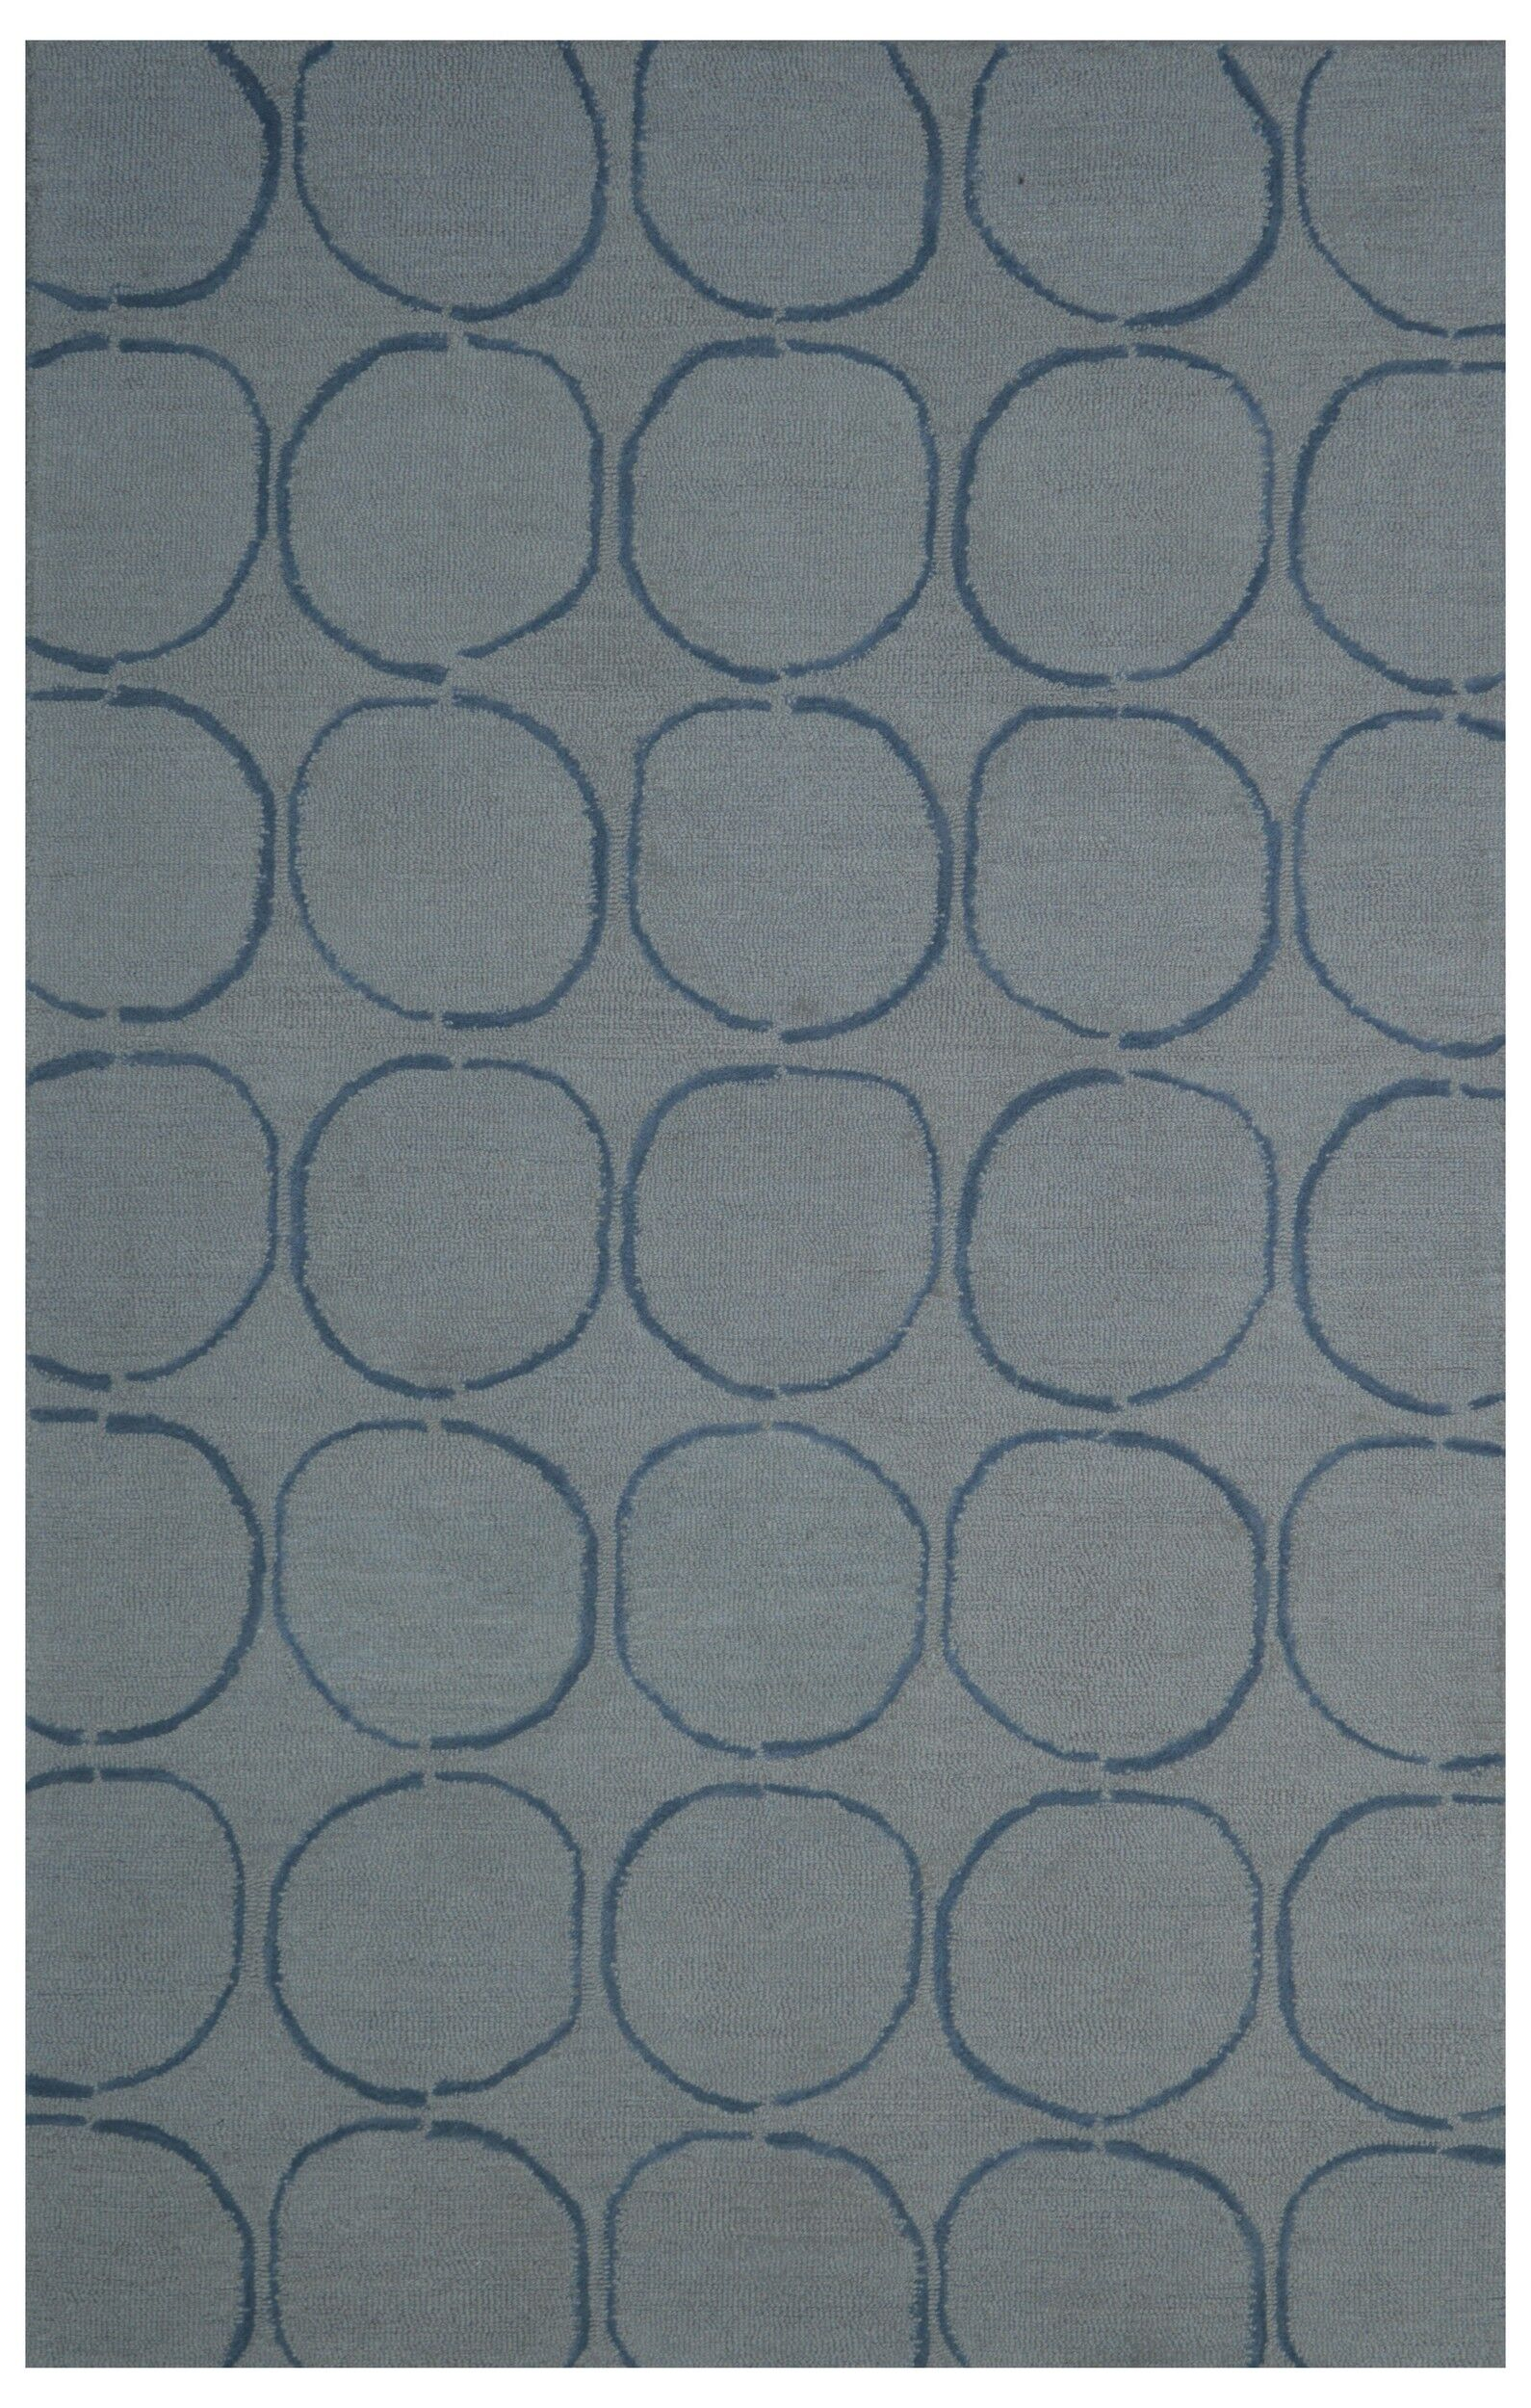 Wool Hand-Tufted Gray/Blue Area Rug Rug Size: 5' x 8'